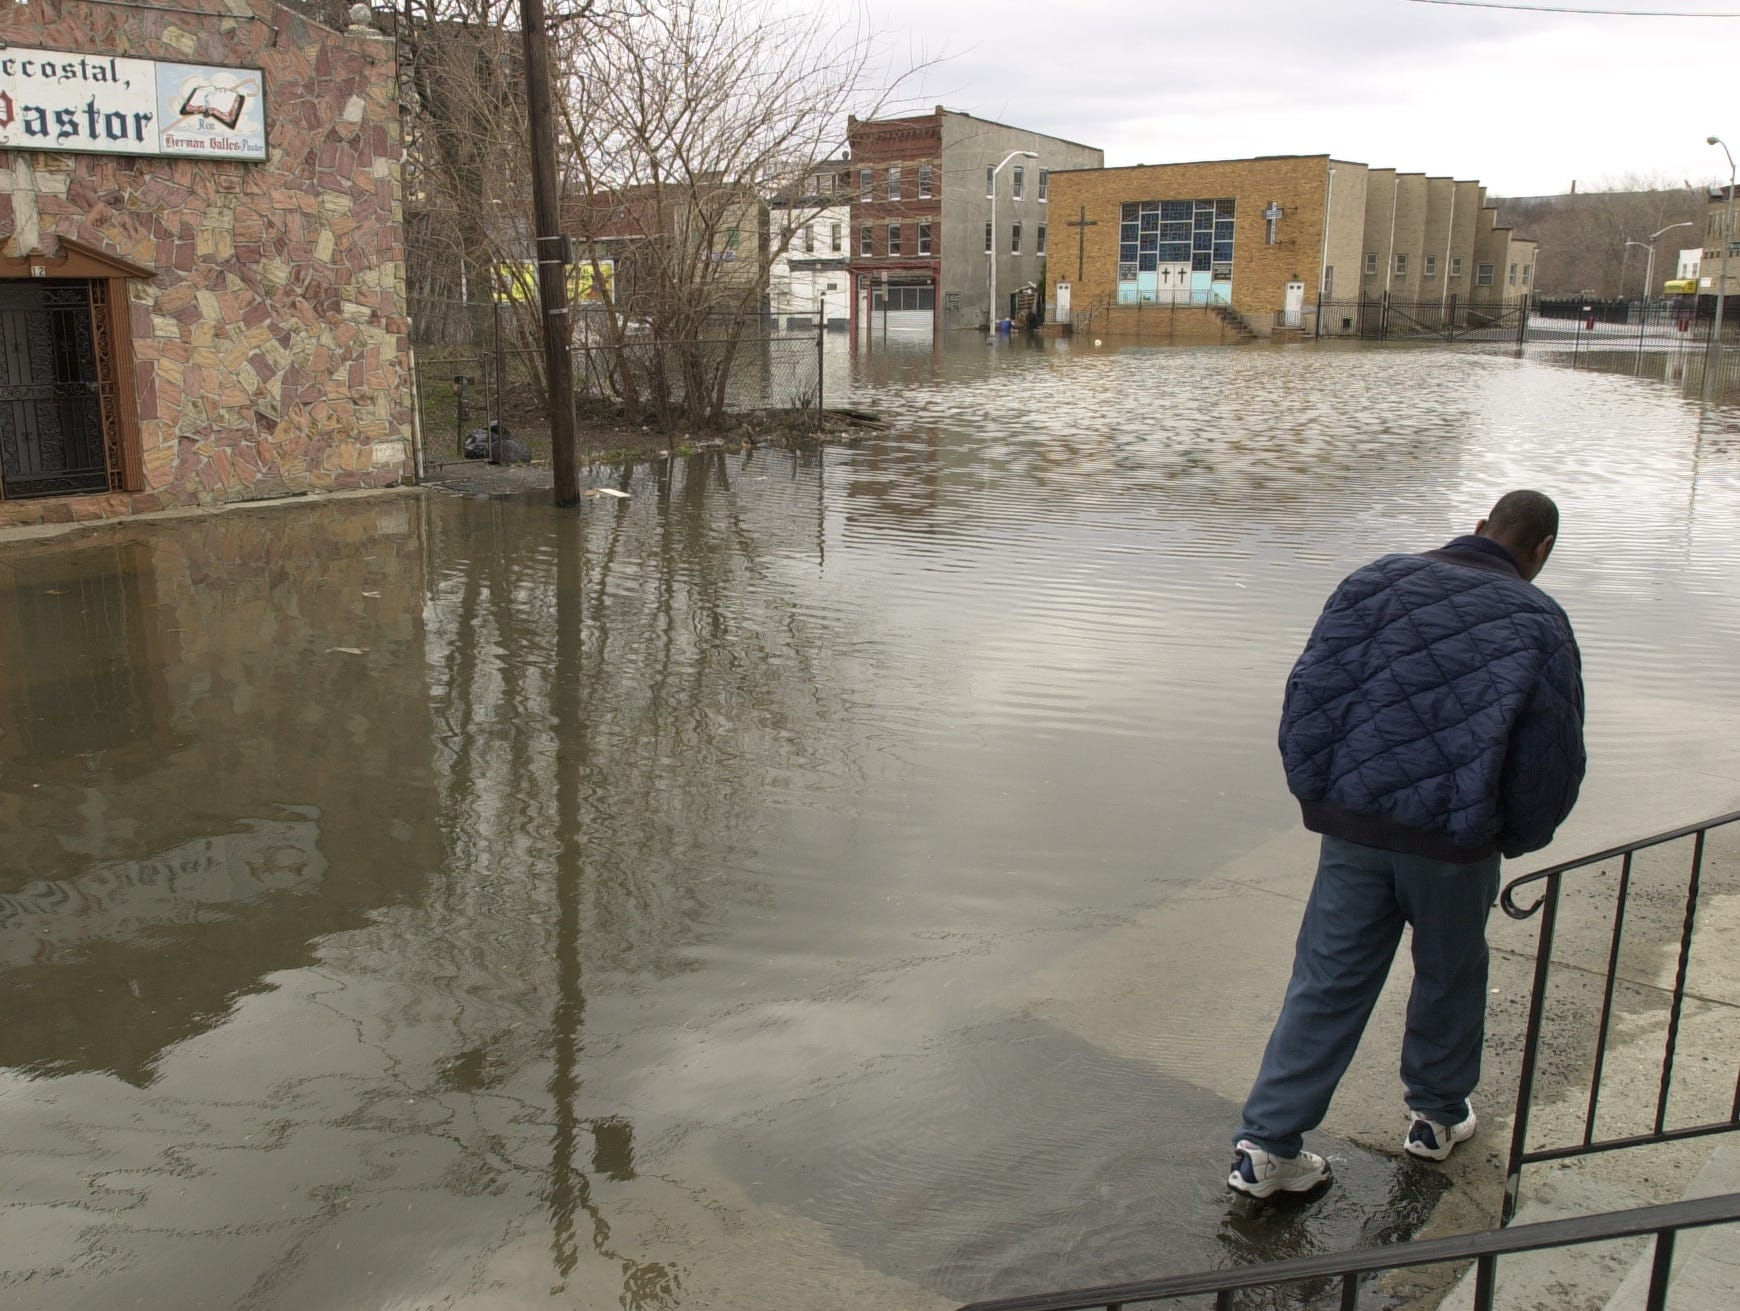 April 4, 2005: Flooding in Paterson near Passaic River and Bridge Street.  Reginald Warner surveying flood conditions on Governor St. near Bridge Street as the water continued to rise Monday morning.  He said it was the worse flooding since Hurricane Floyd.